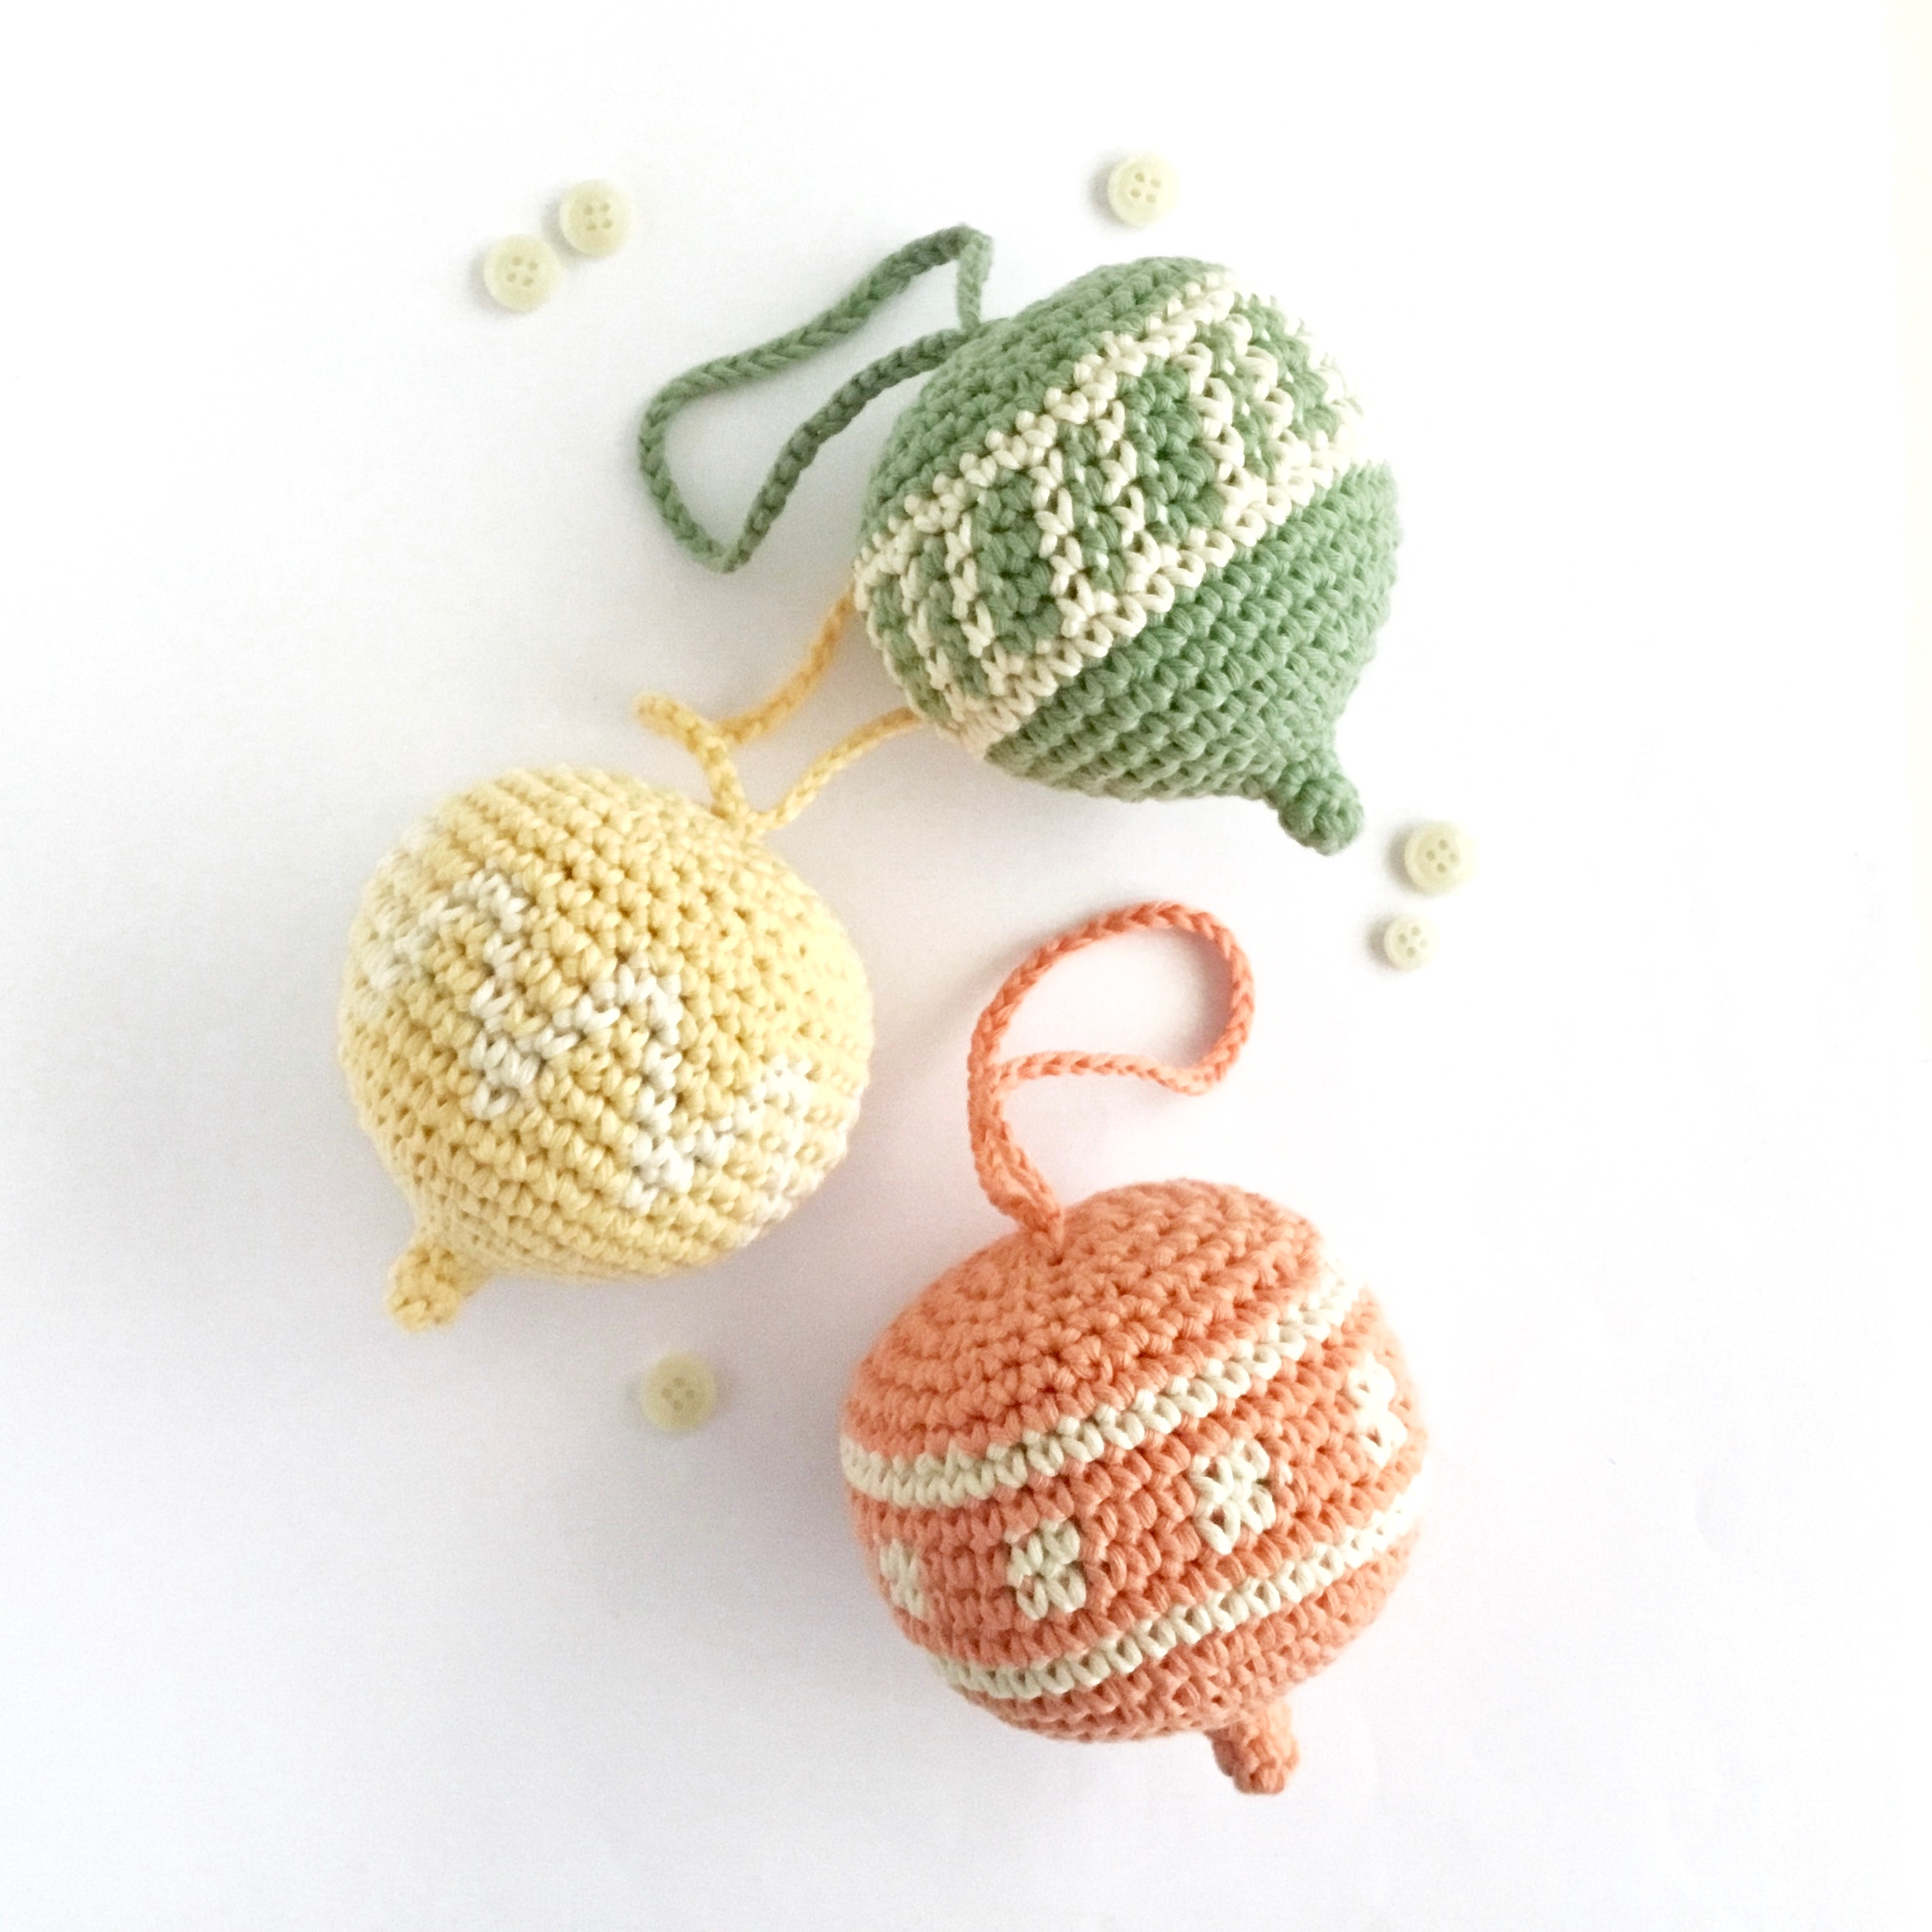 Pastel Coloured Spring Ornament Crochet Pattern